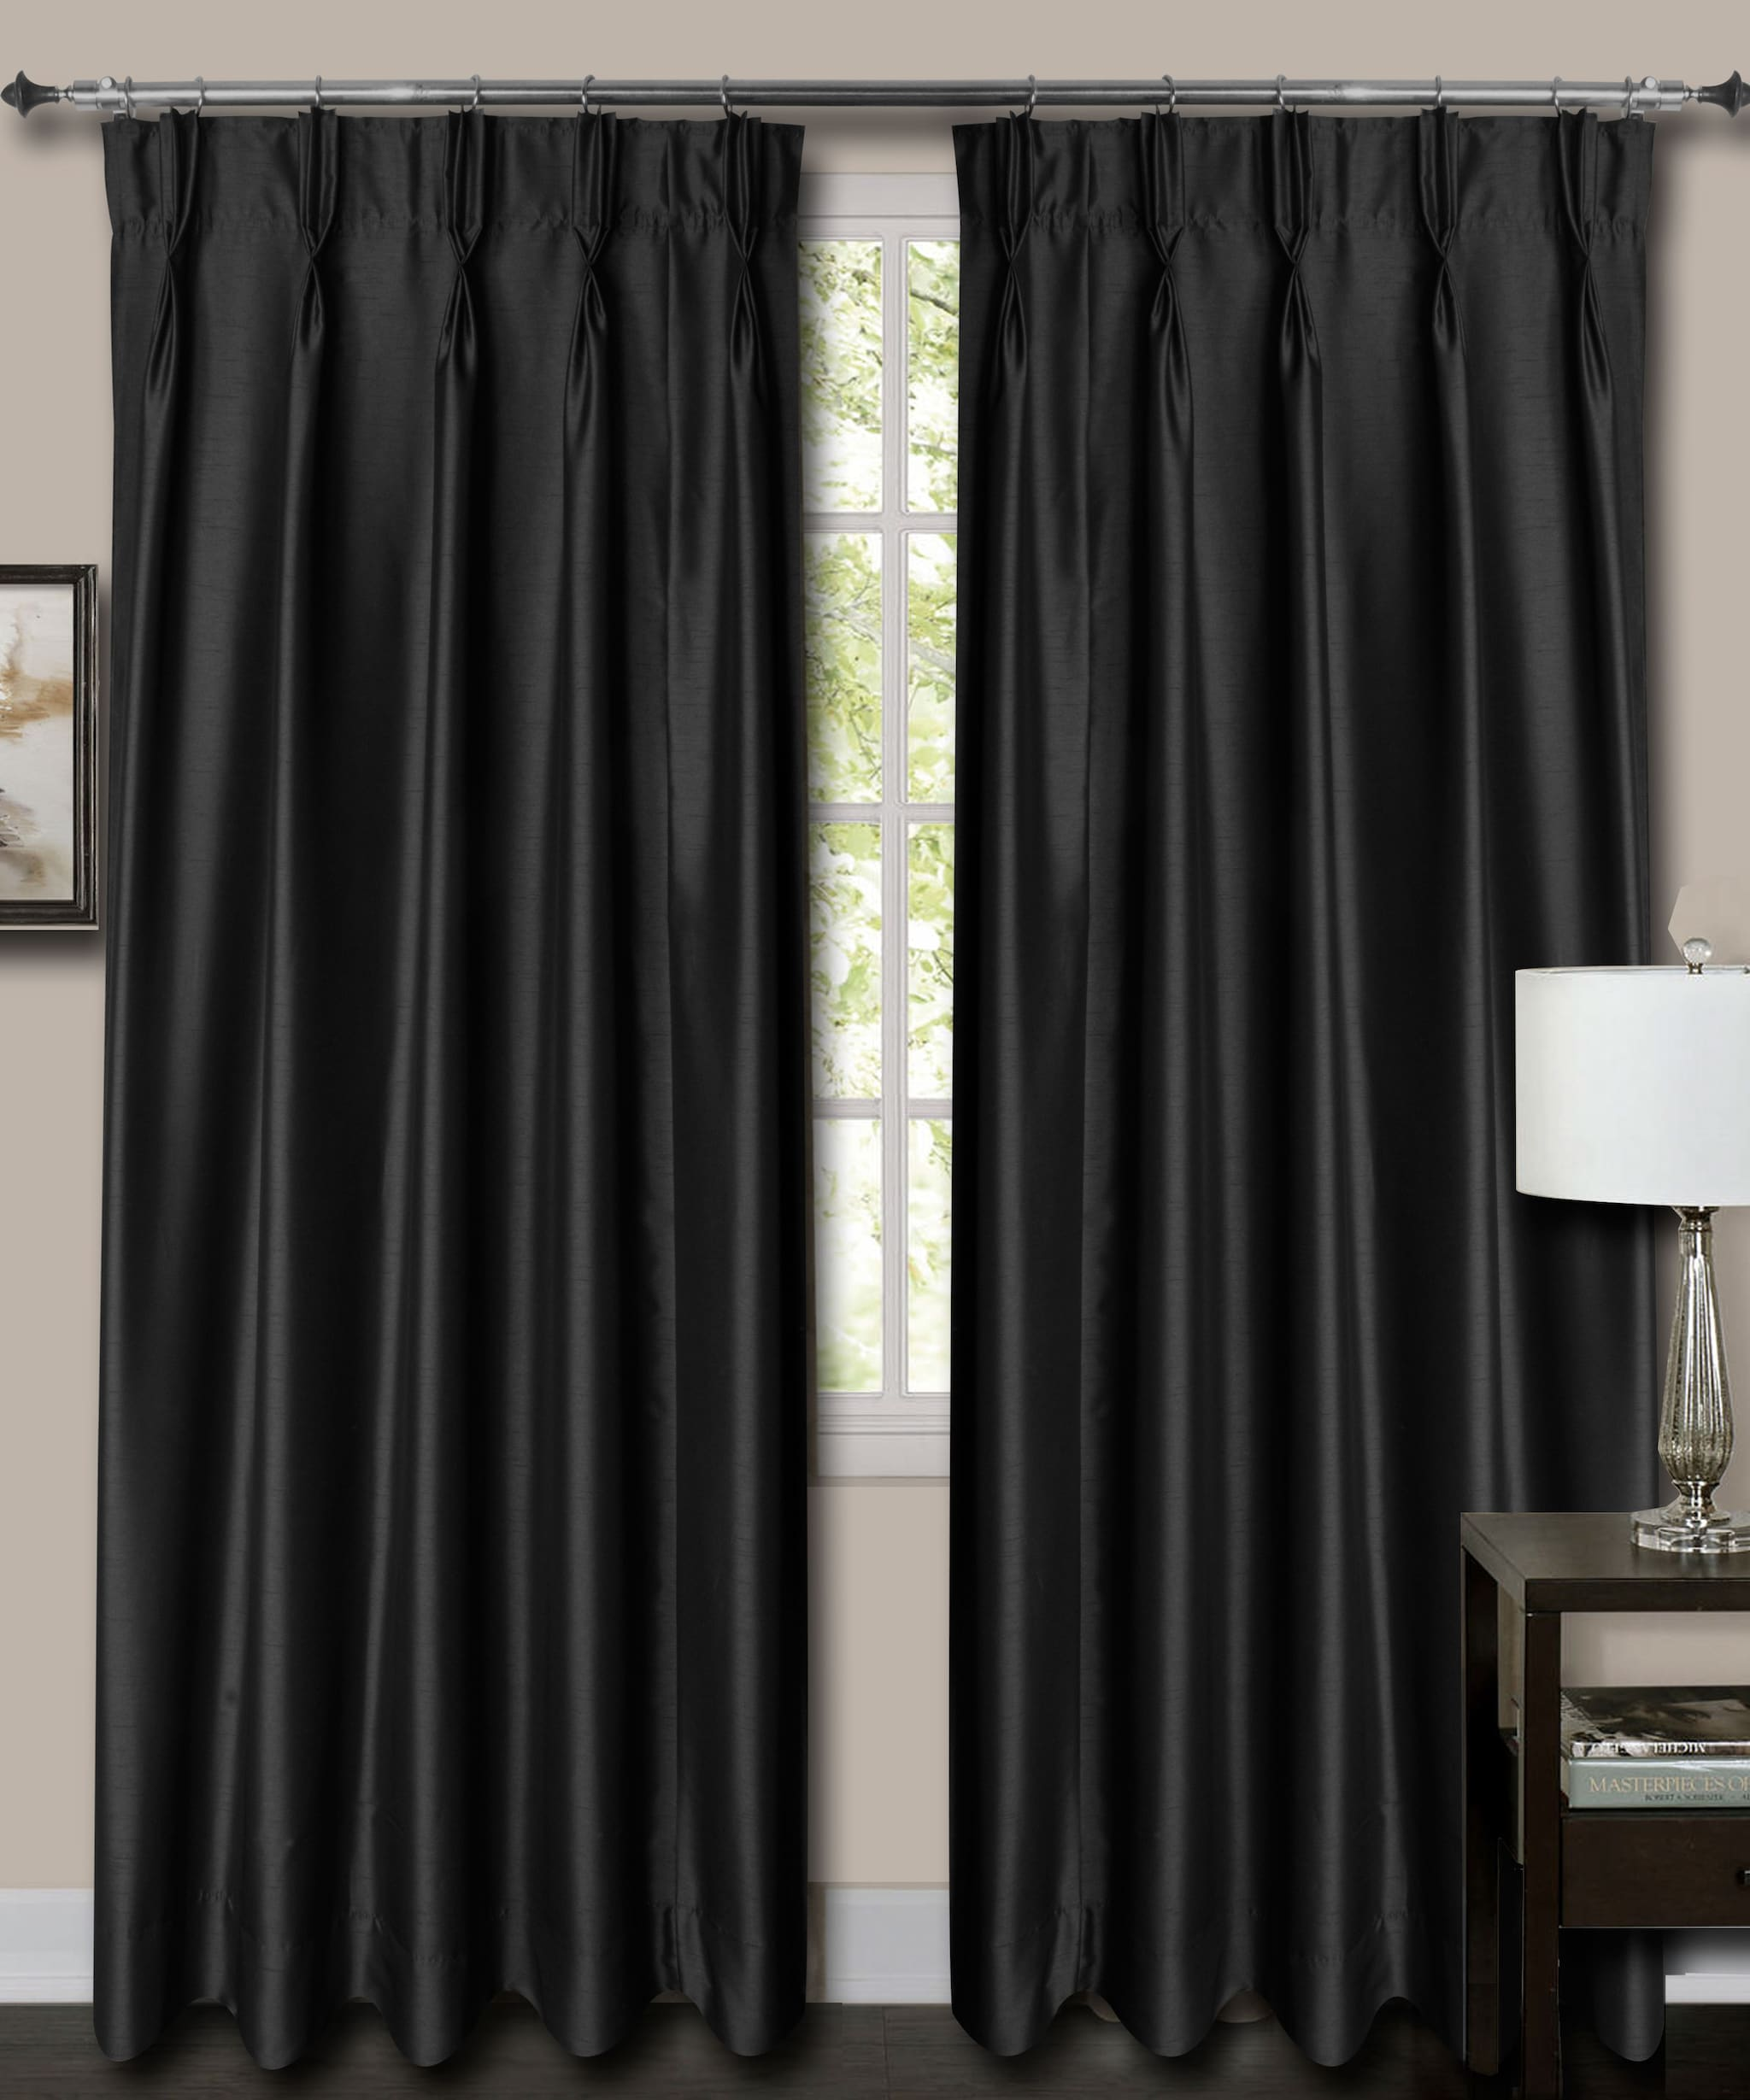 "French Pleat Top Black Faux Silk Dupioni Curtains. (52"" Wide,14 Feet Long,Without Lining)"